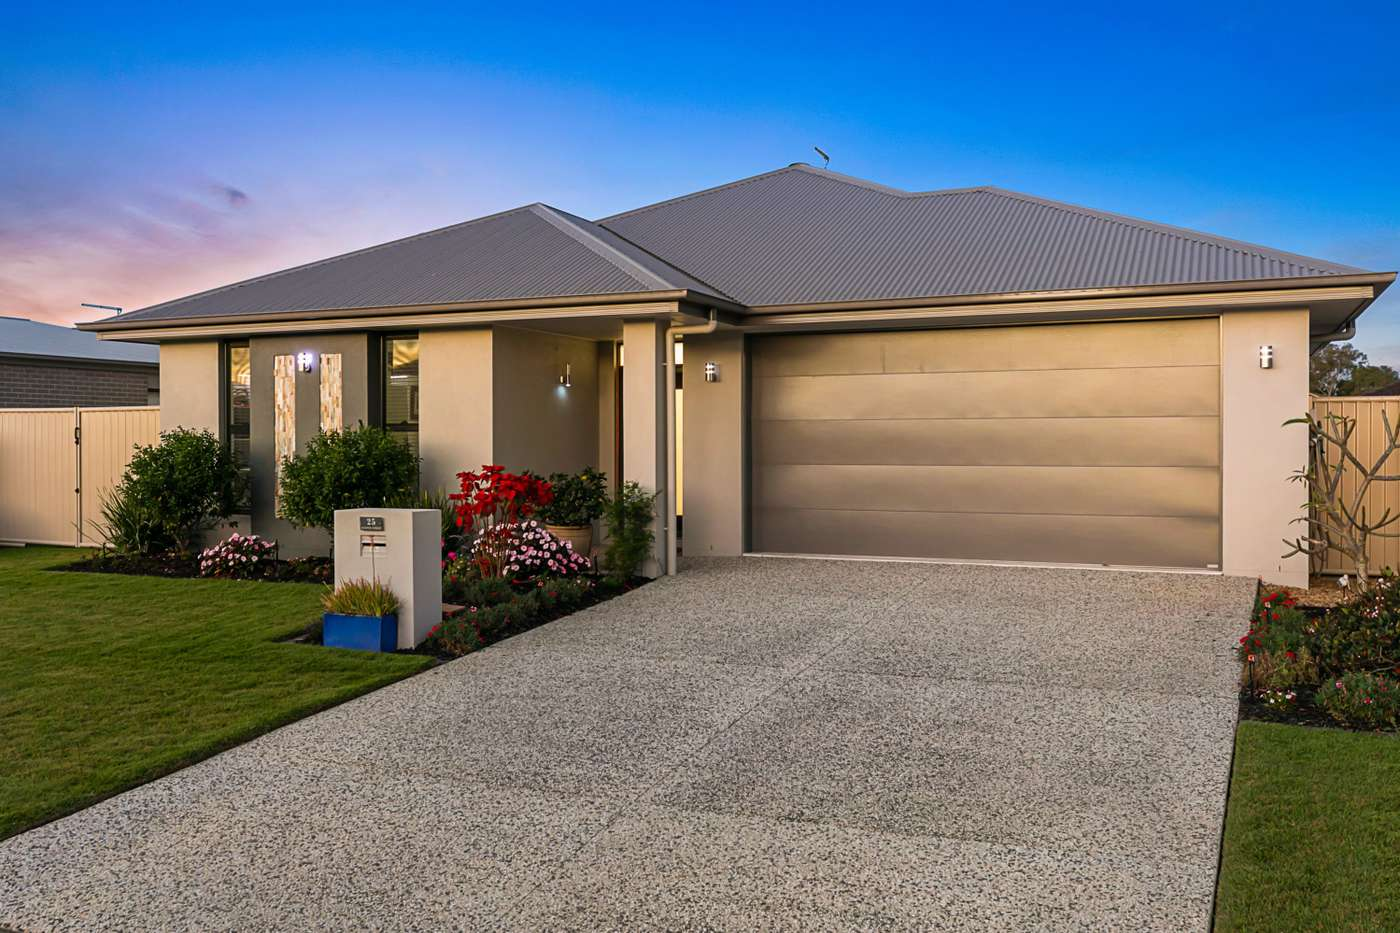 Main view of Homely house listing, 25 Hooper Street, Birkdale, QLD 4159